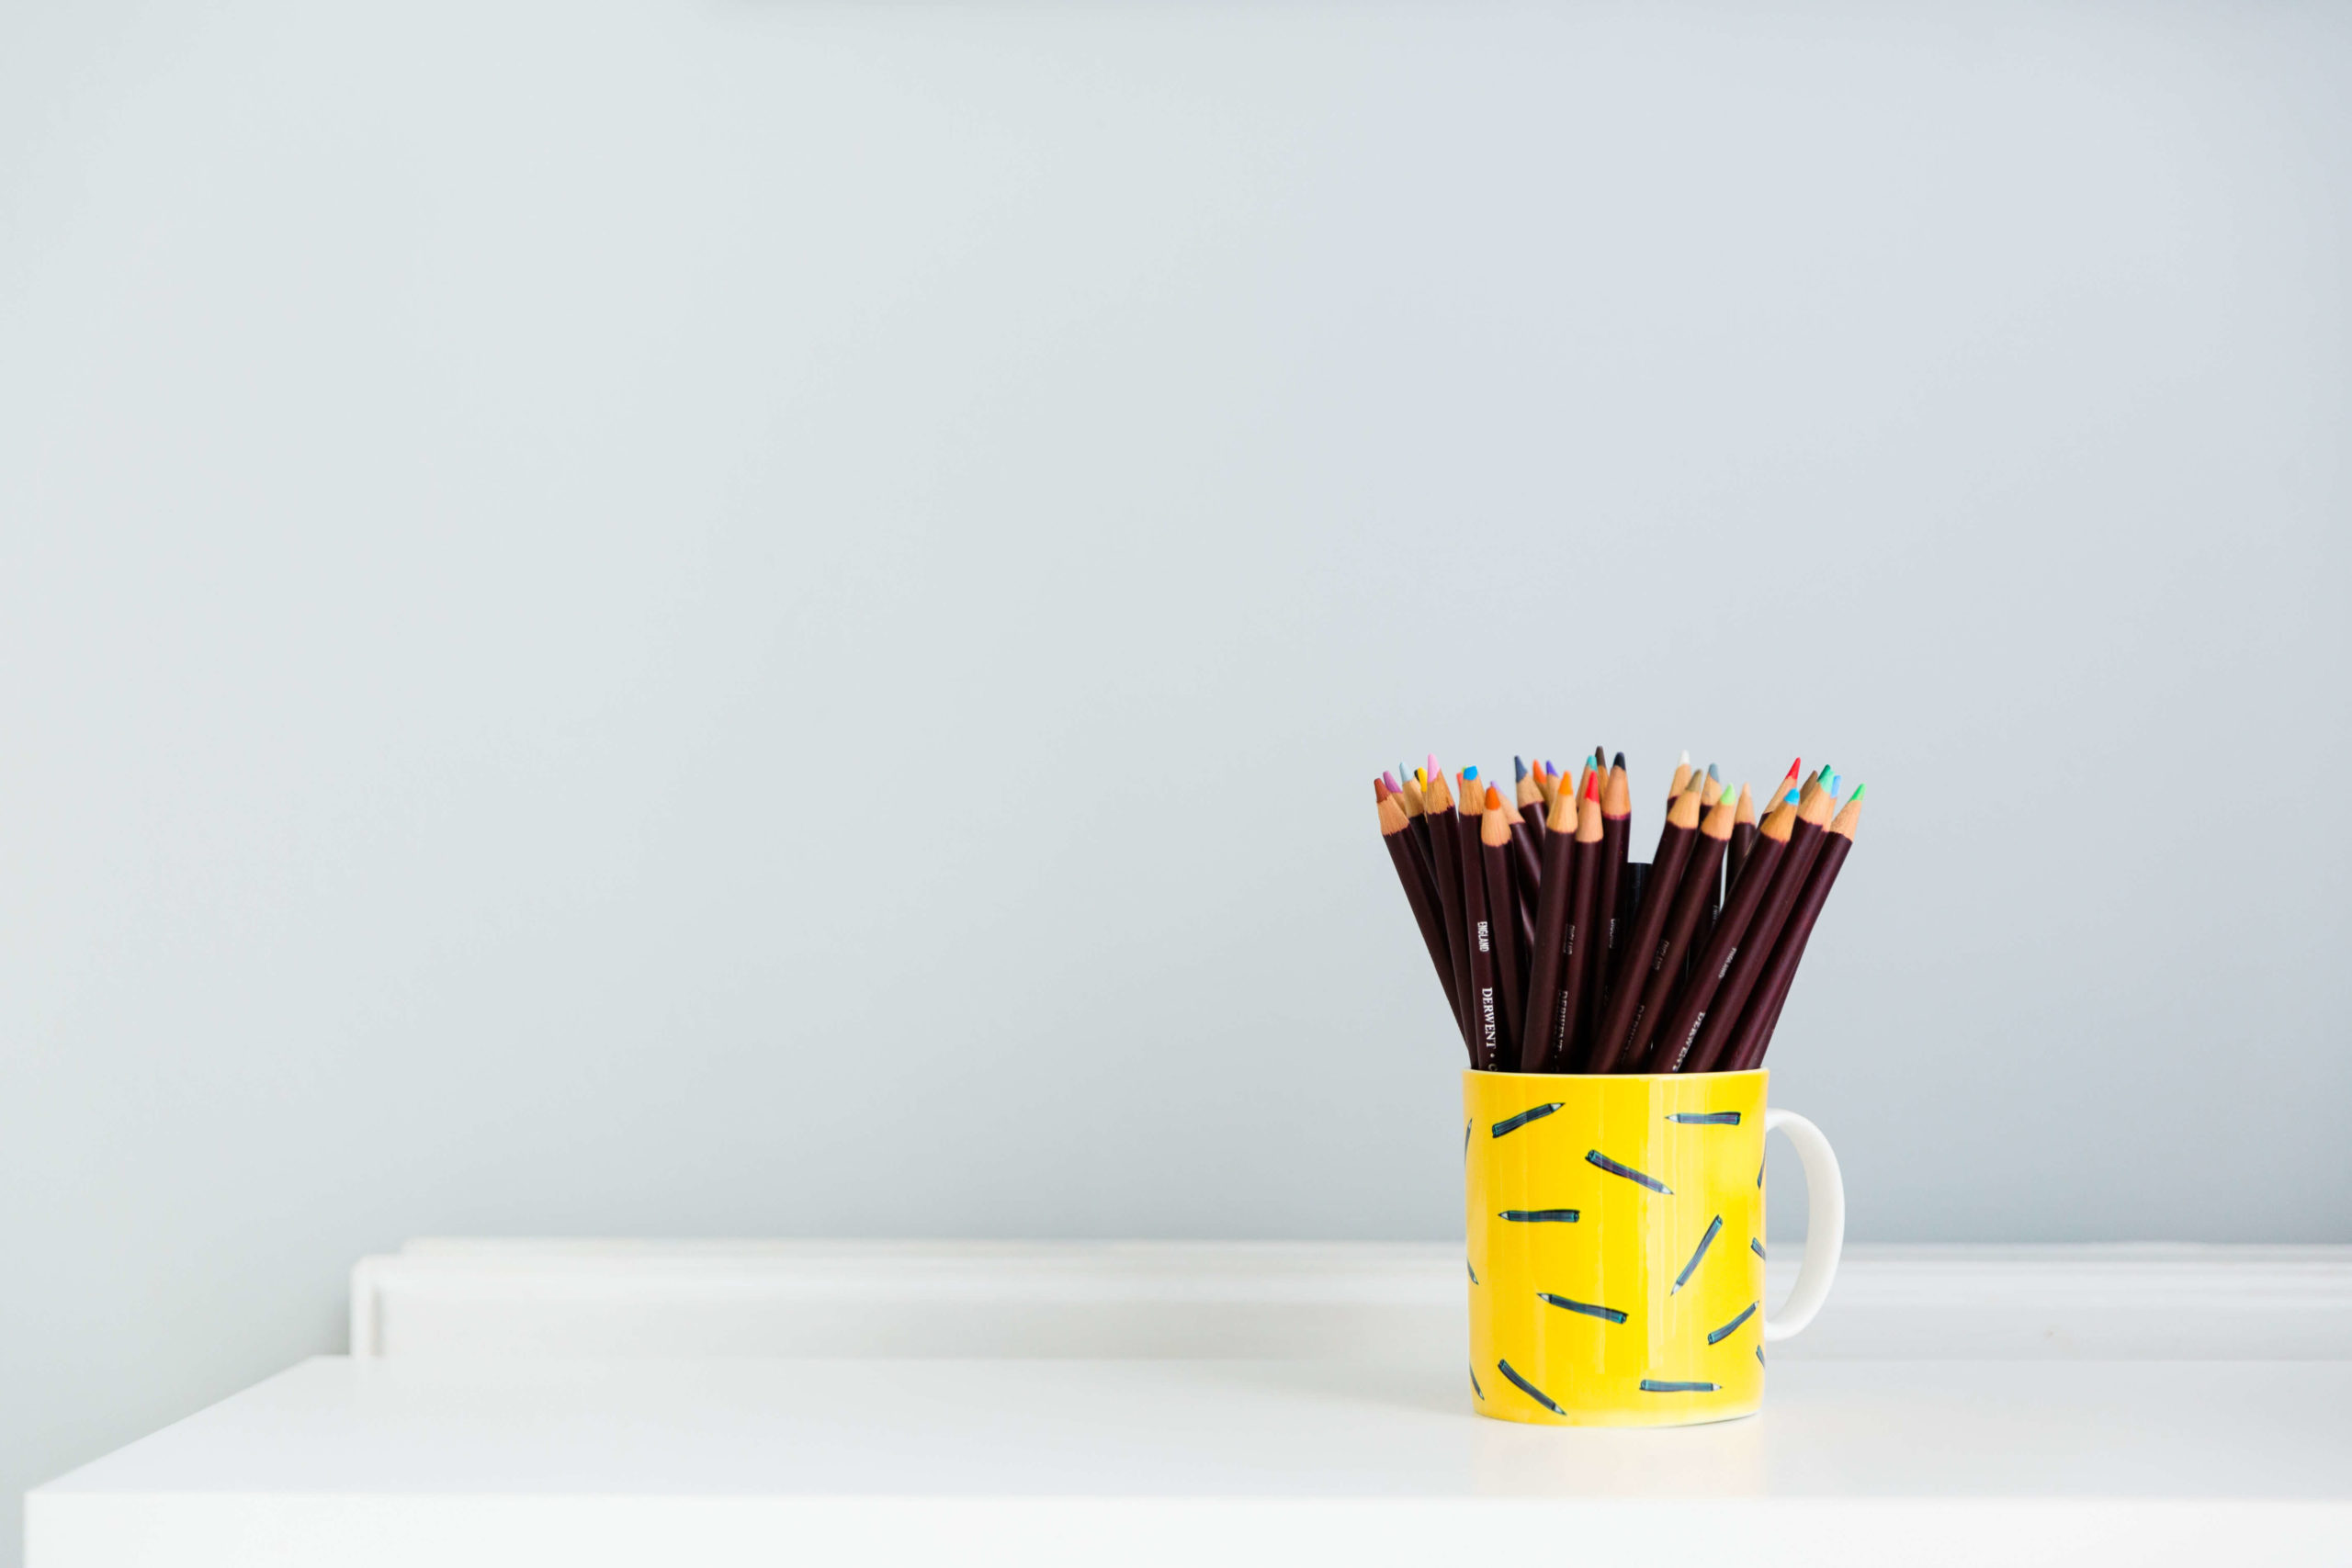 pot of colourful pencils by Personal branding photographer Kika mItchell Photography based in Chelmsford Essex